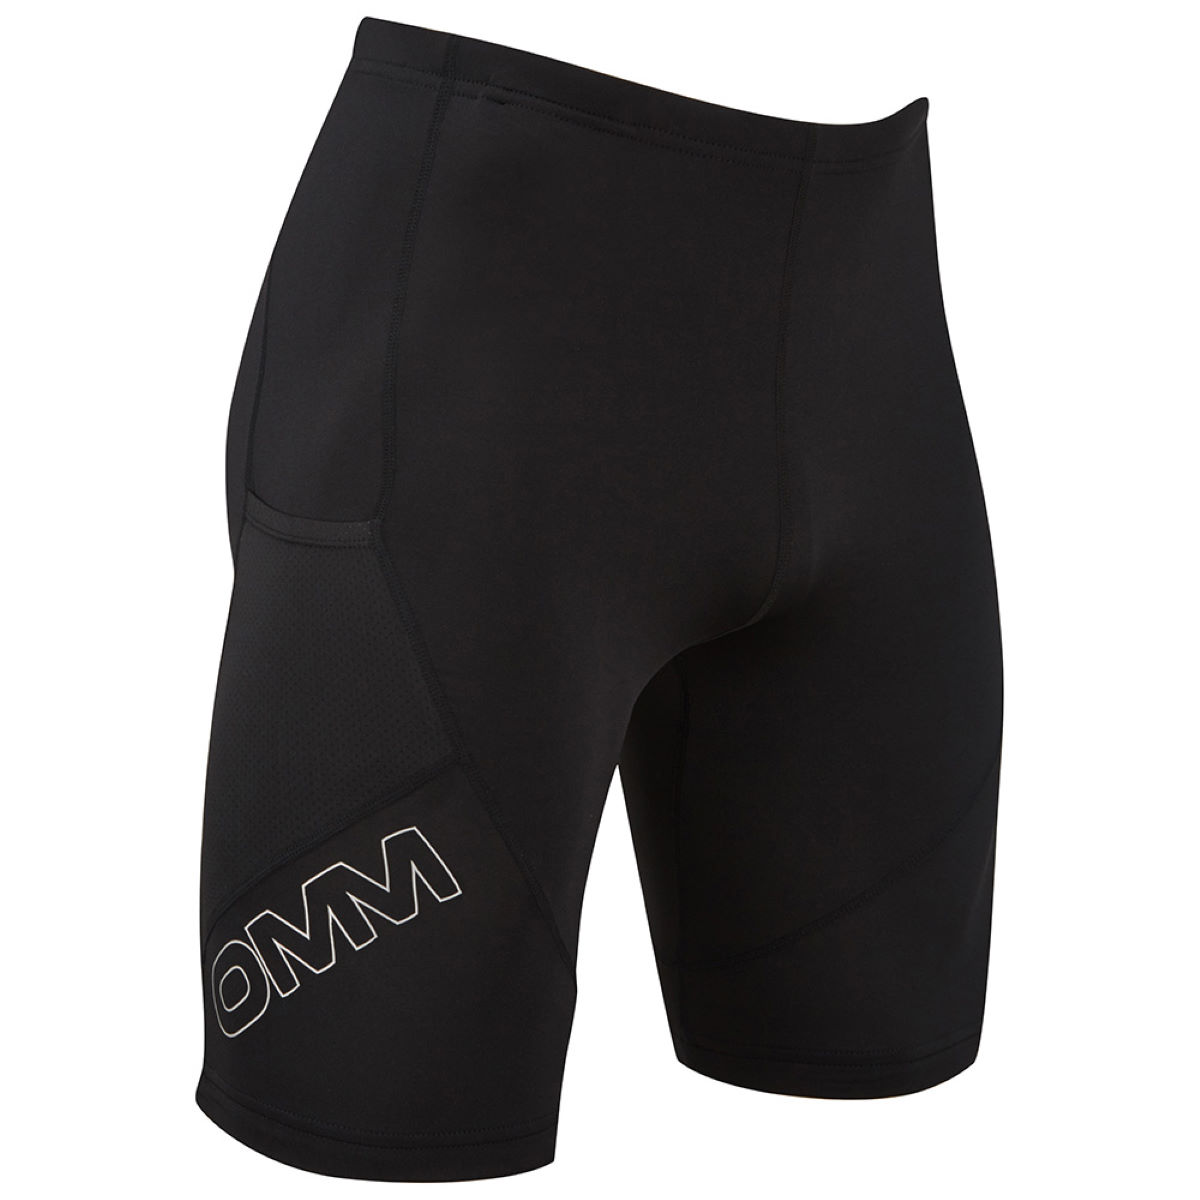 Image of Collant OMM Flash 0,5 - S Noir | Shorts